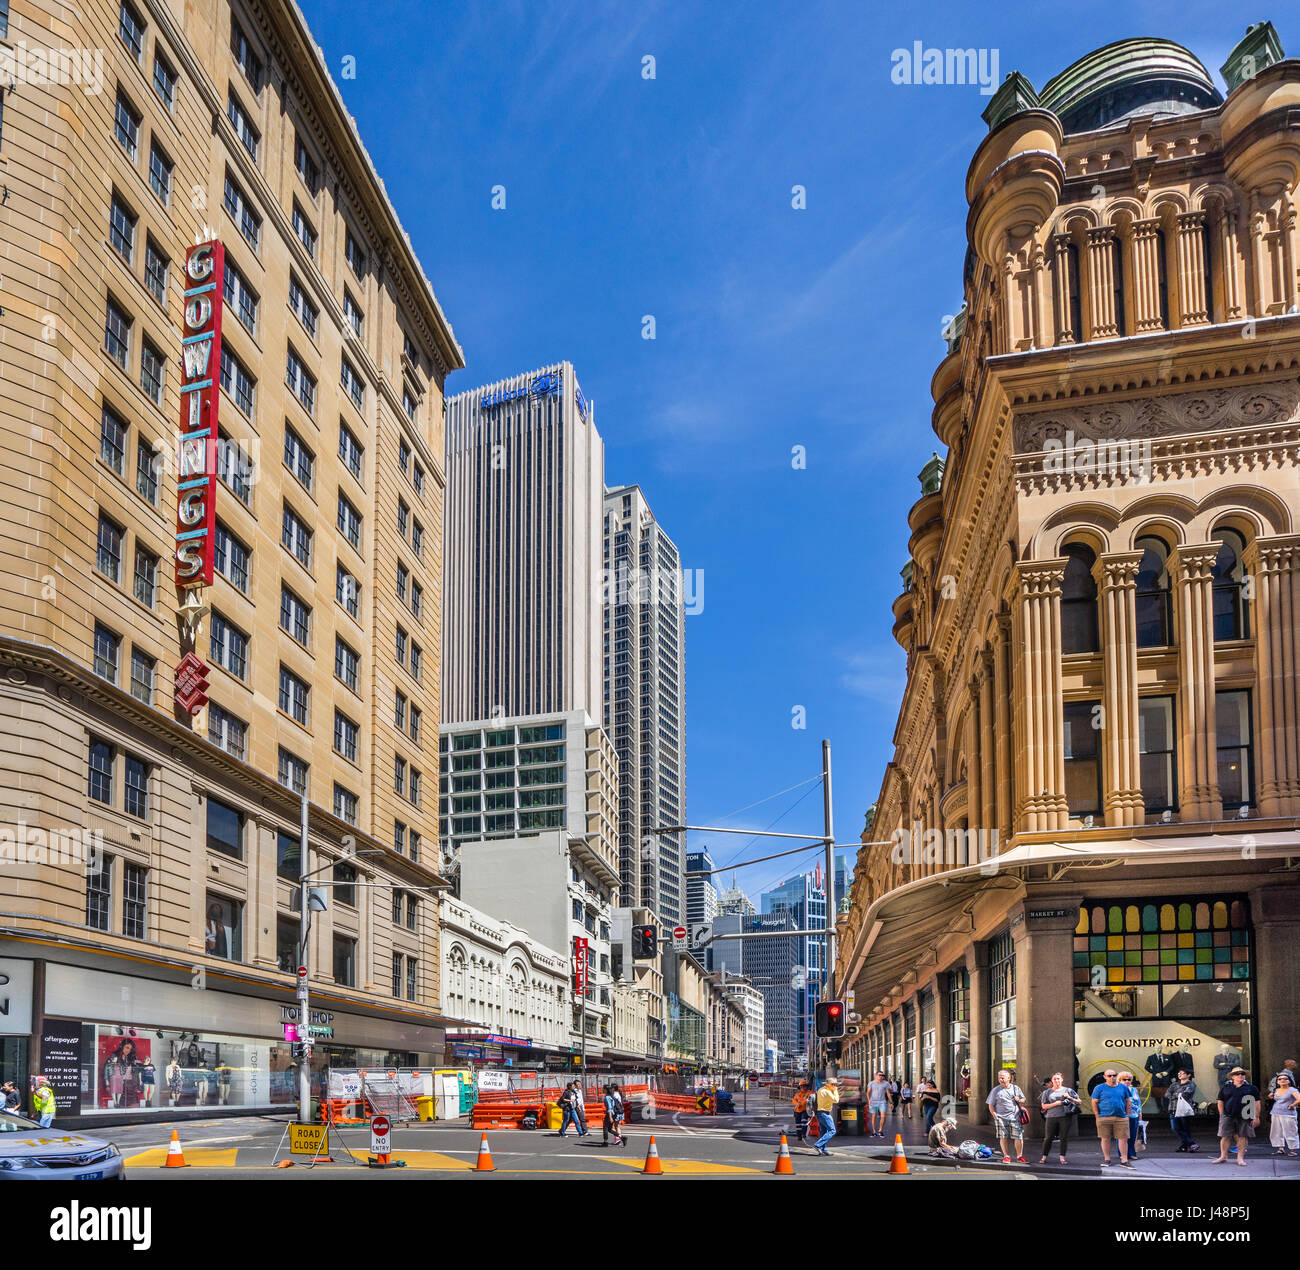 Australia, New South Wales, Sydney CBD, Queen Victoria Building, road closure at George Street for the construction - Stock Image